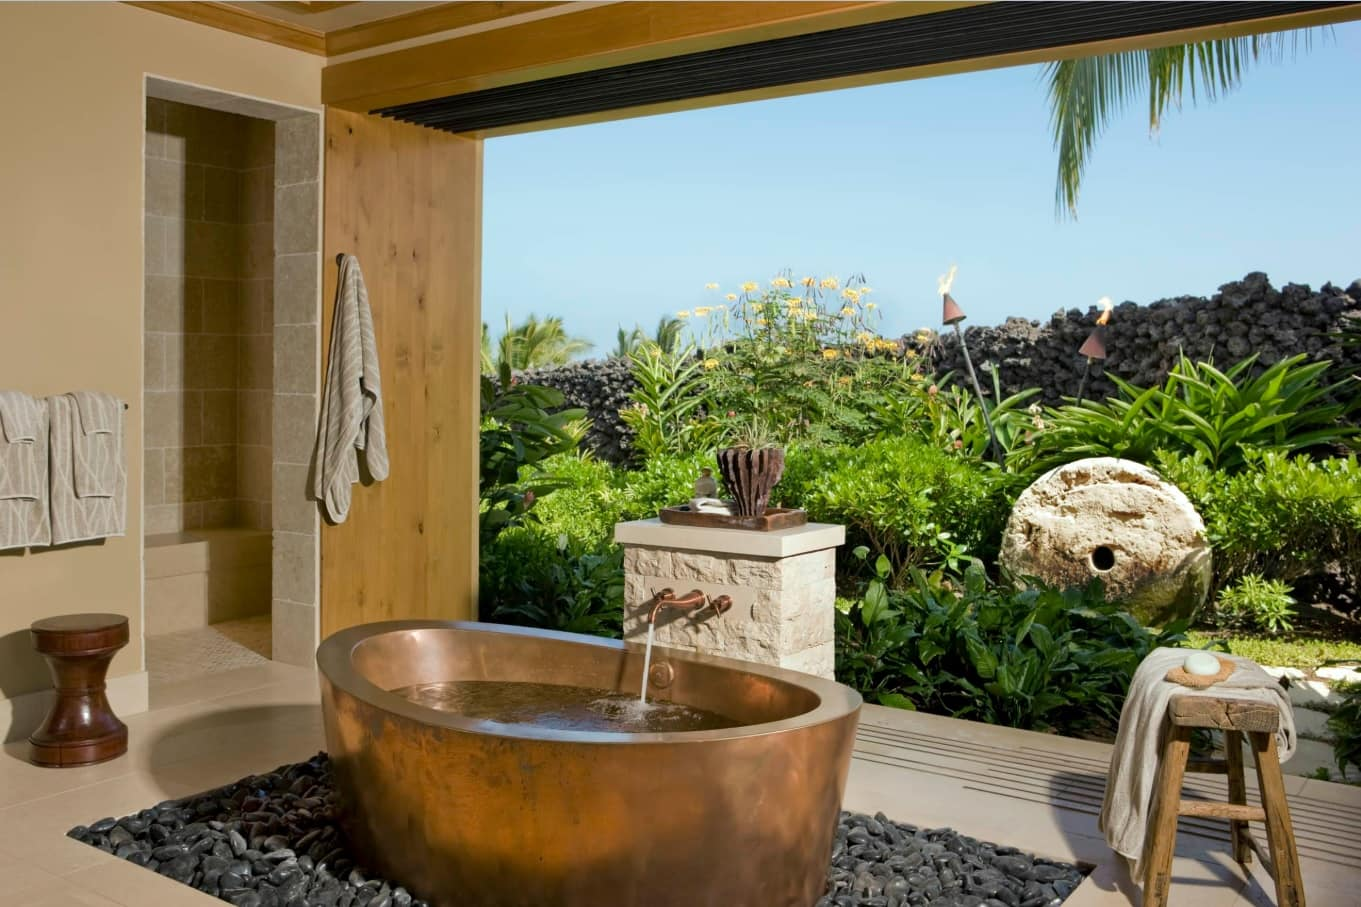 Panoramic glass wall to the backyard of the tropic house with oval copper bathtub in the center lying on pebbles